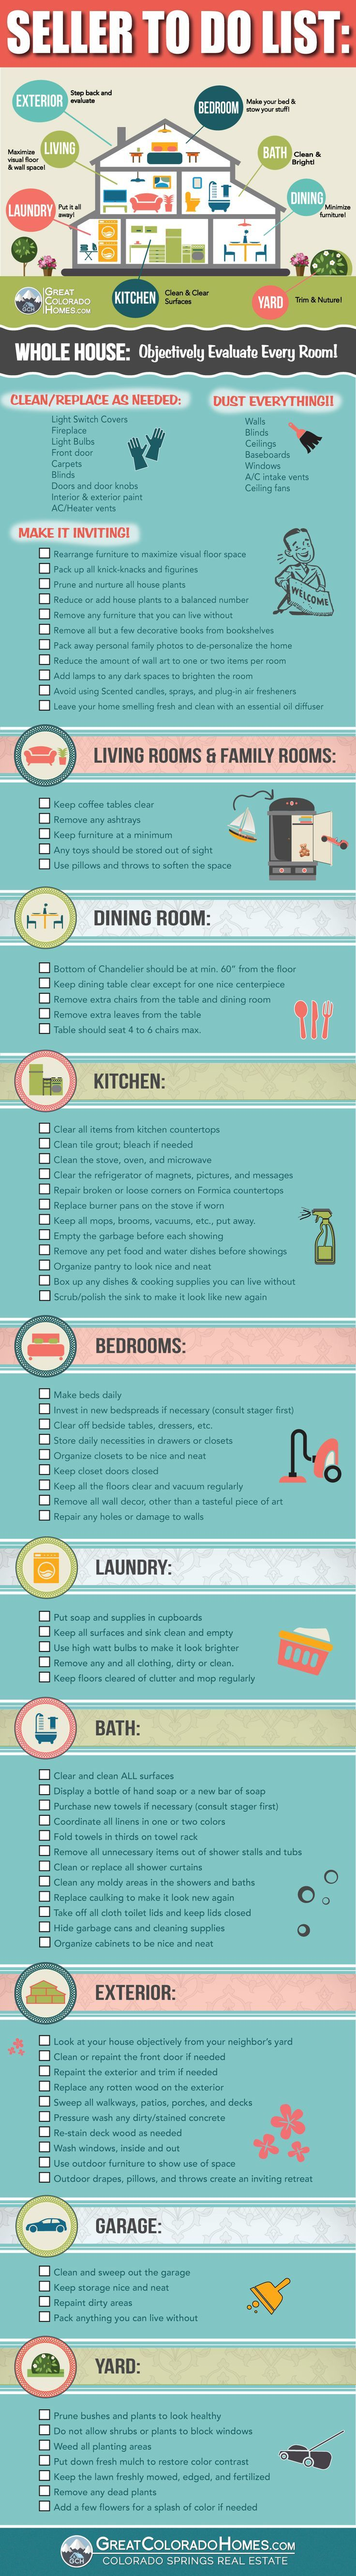 Home seller to do list. Very helpful resource to prepare to sell your home or real estate.: